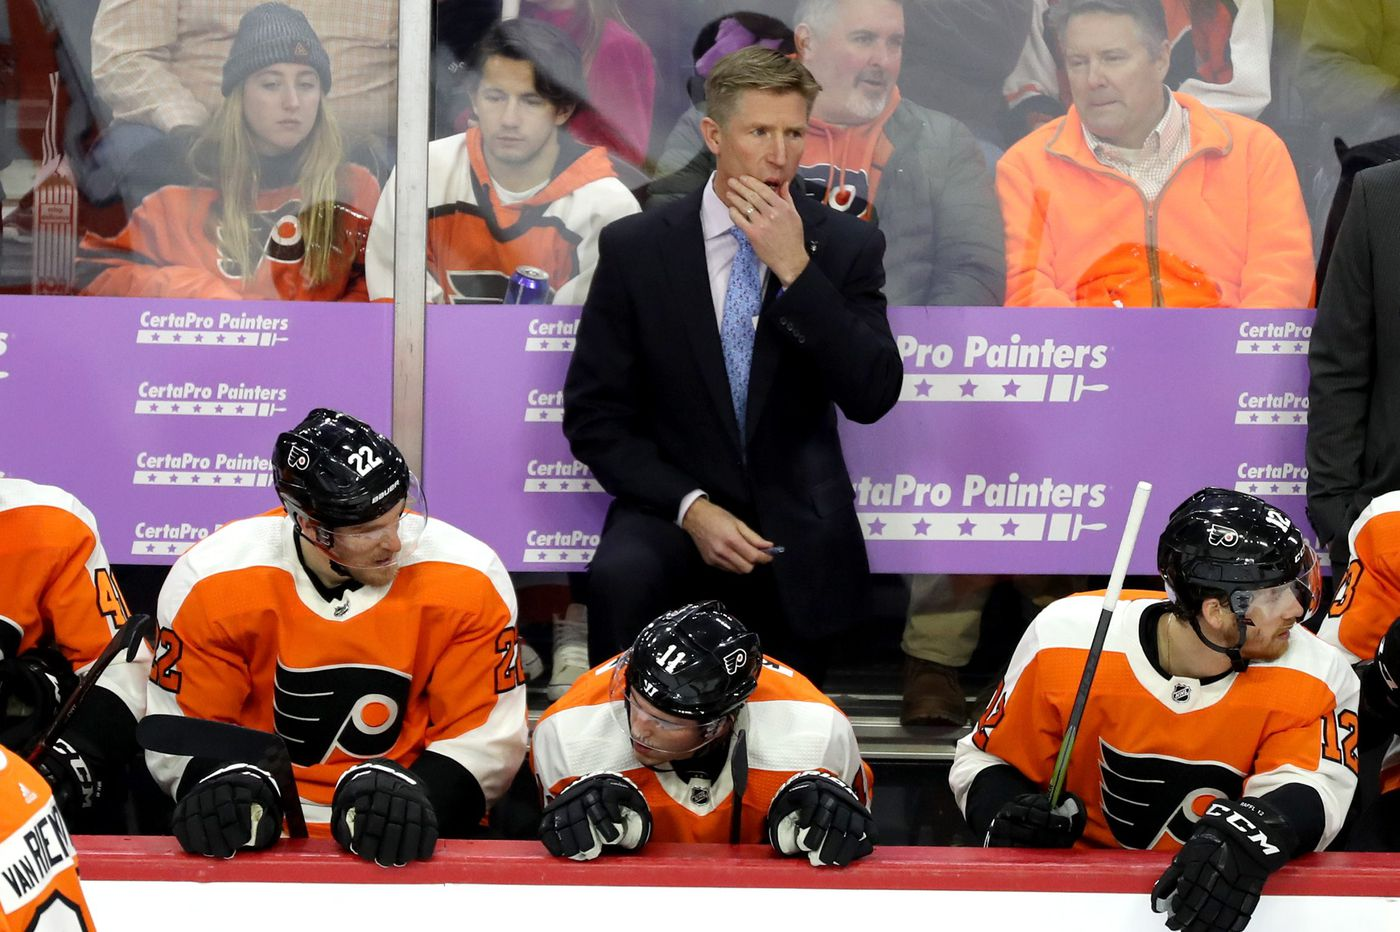 Dave Hakstol and his Flyers get a chance to reset and reprieve after Chuck Fletcher hiring | Sam Donnellon